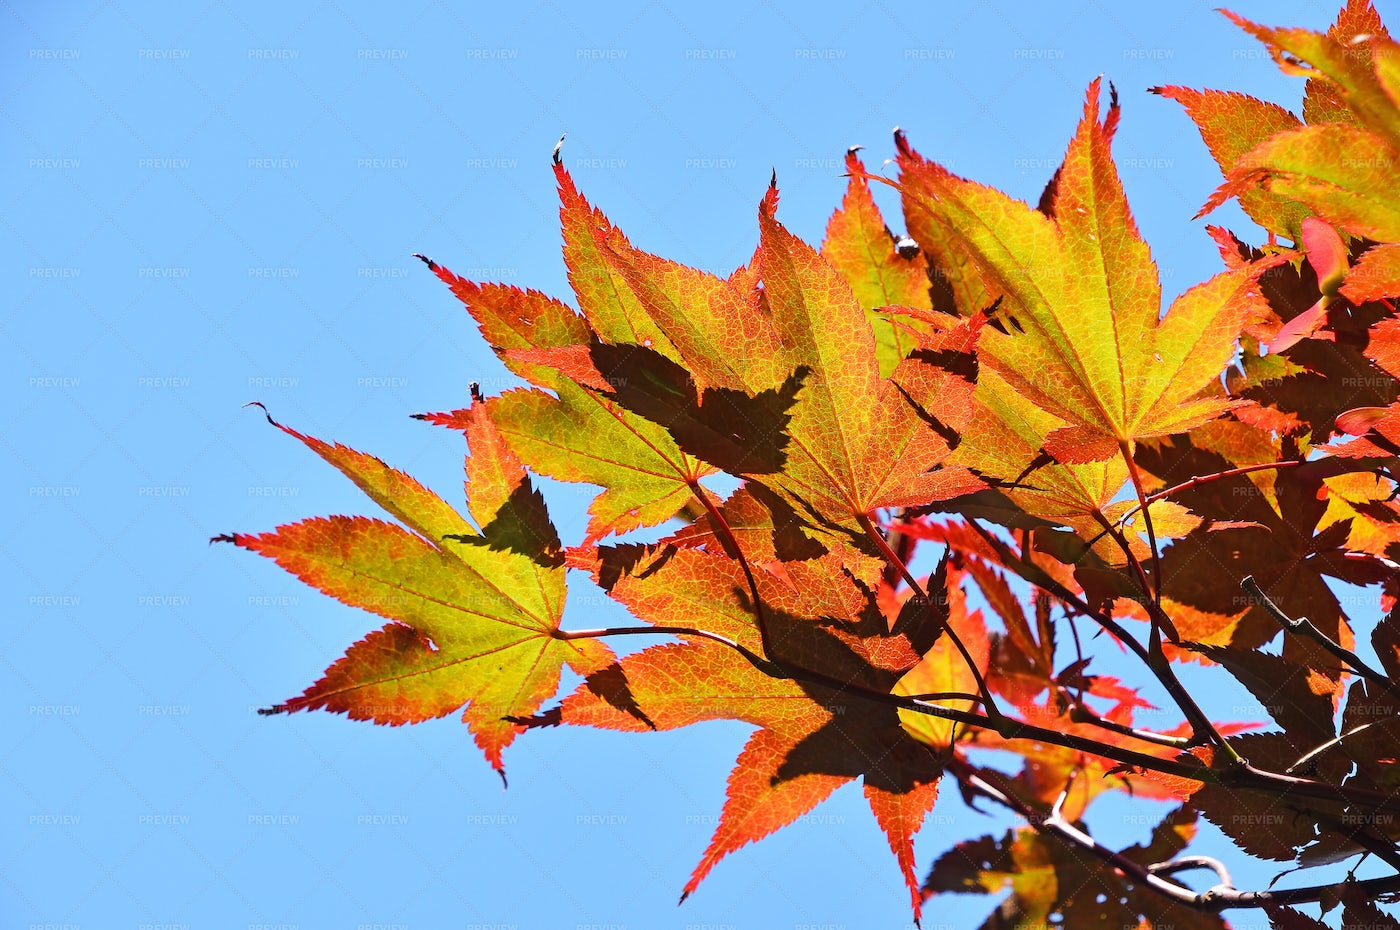 Autumn Acer Or Maple Leaves: Stock Photos